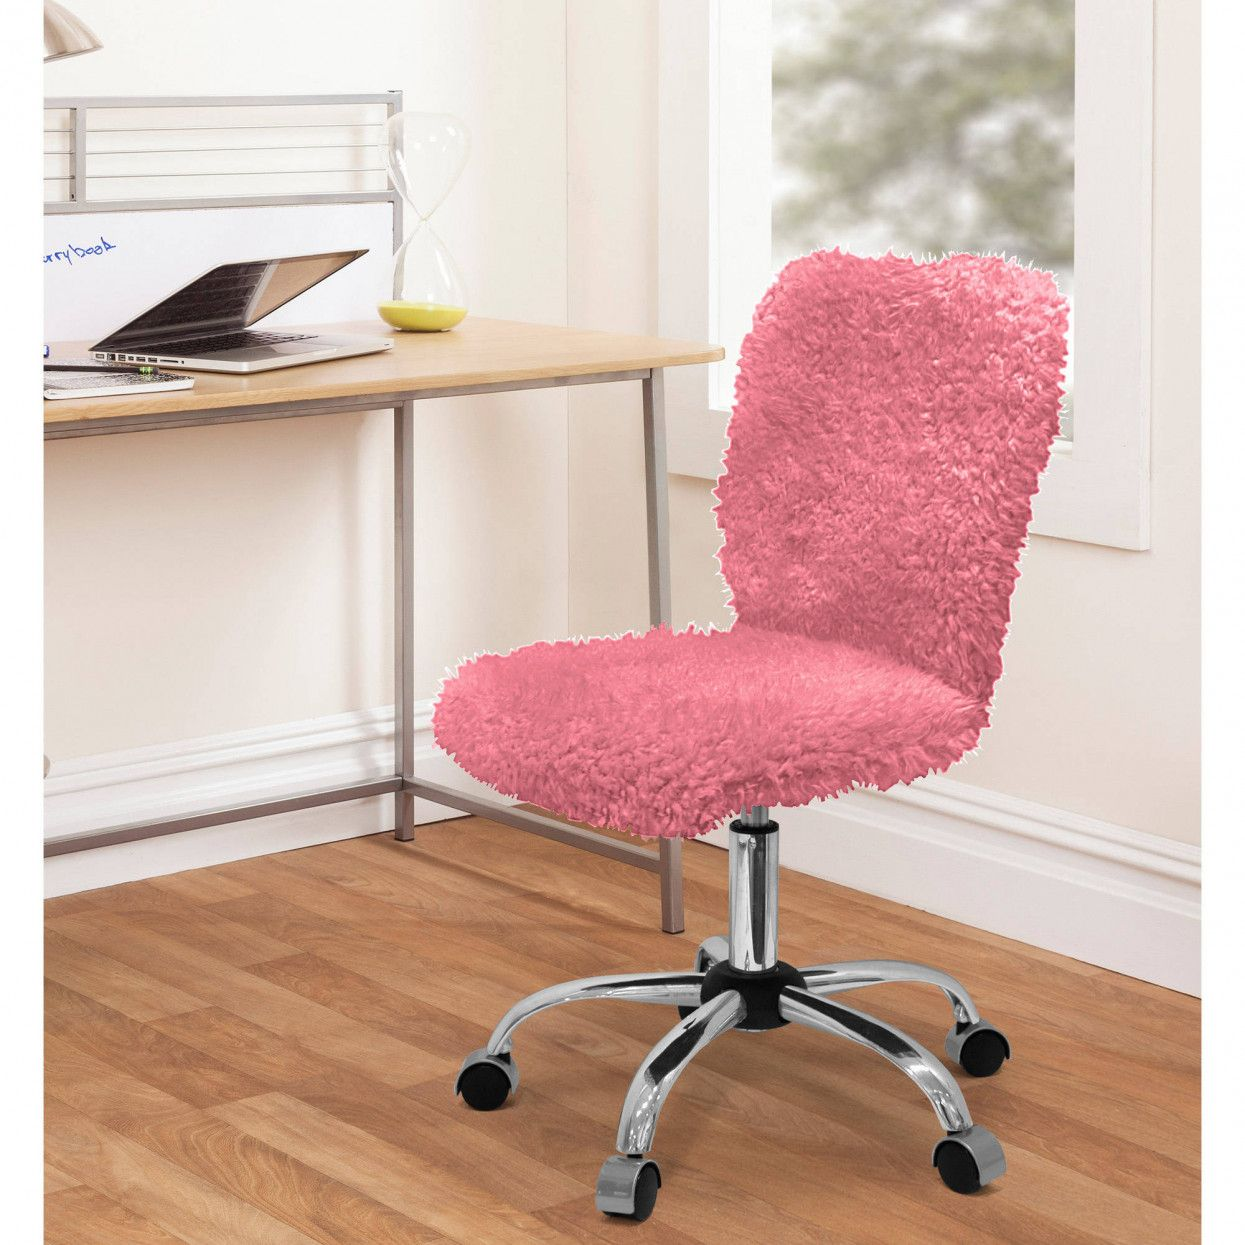 Girls Bedroom Chair Interior Design Small Bedroom Check More At Http Www Eatbeetbox Com Girls Bedroom Chai Girls Desk Chair Kids Desk Chair Cute Desk Chair